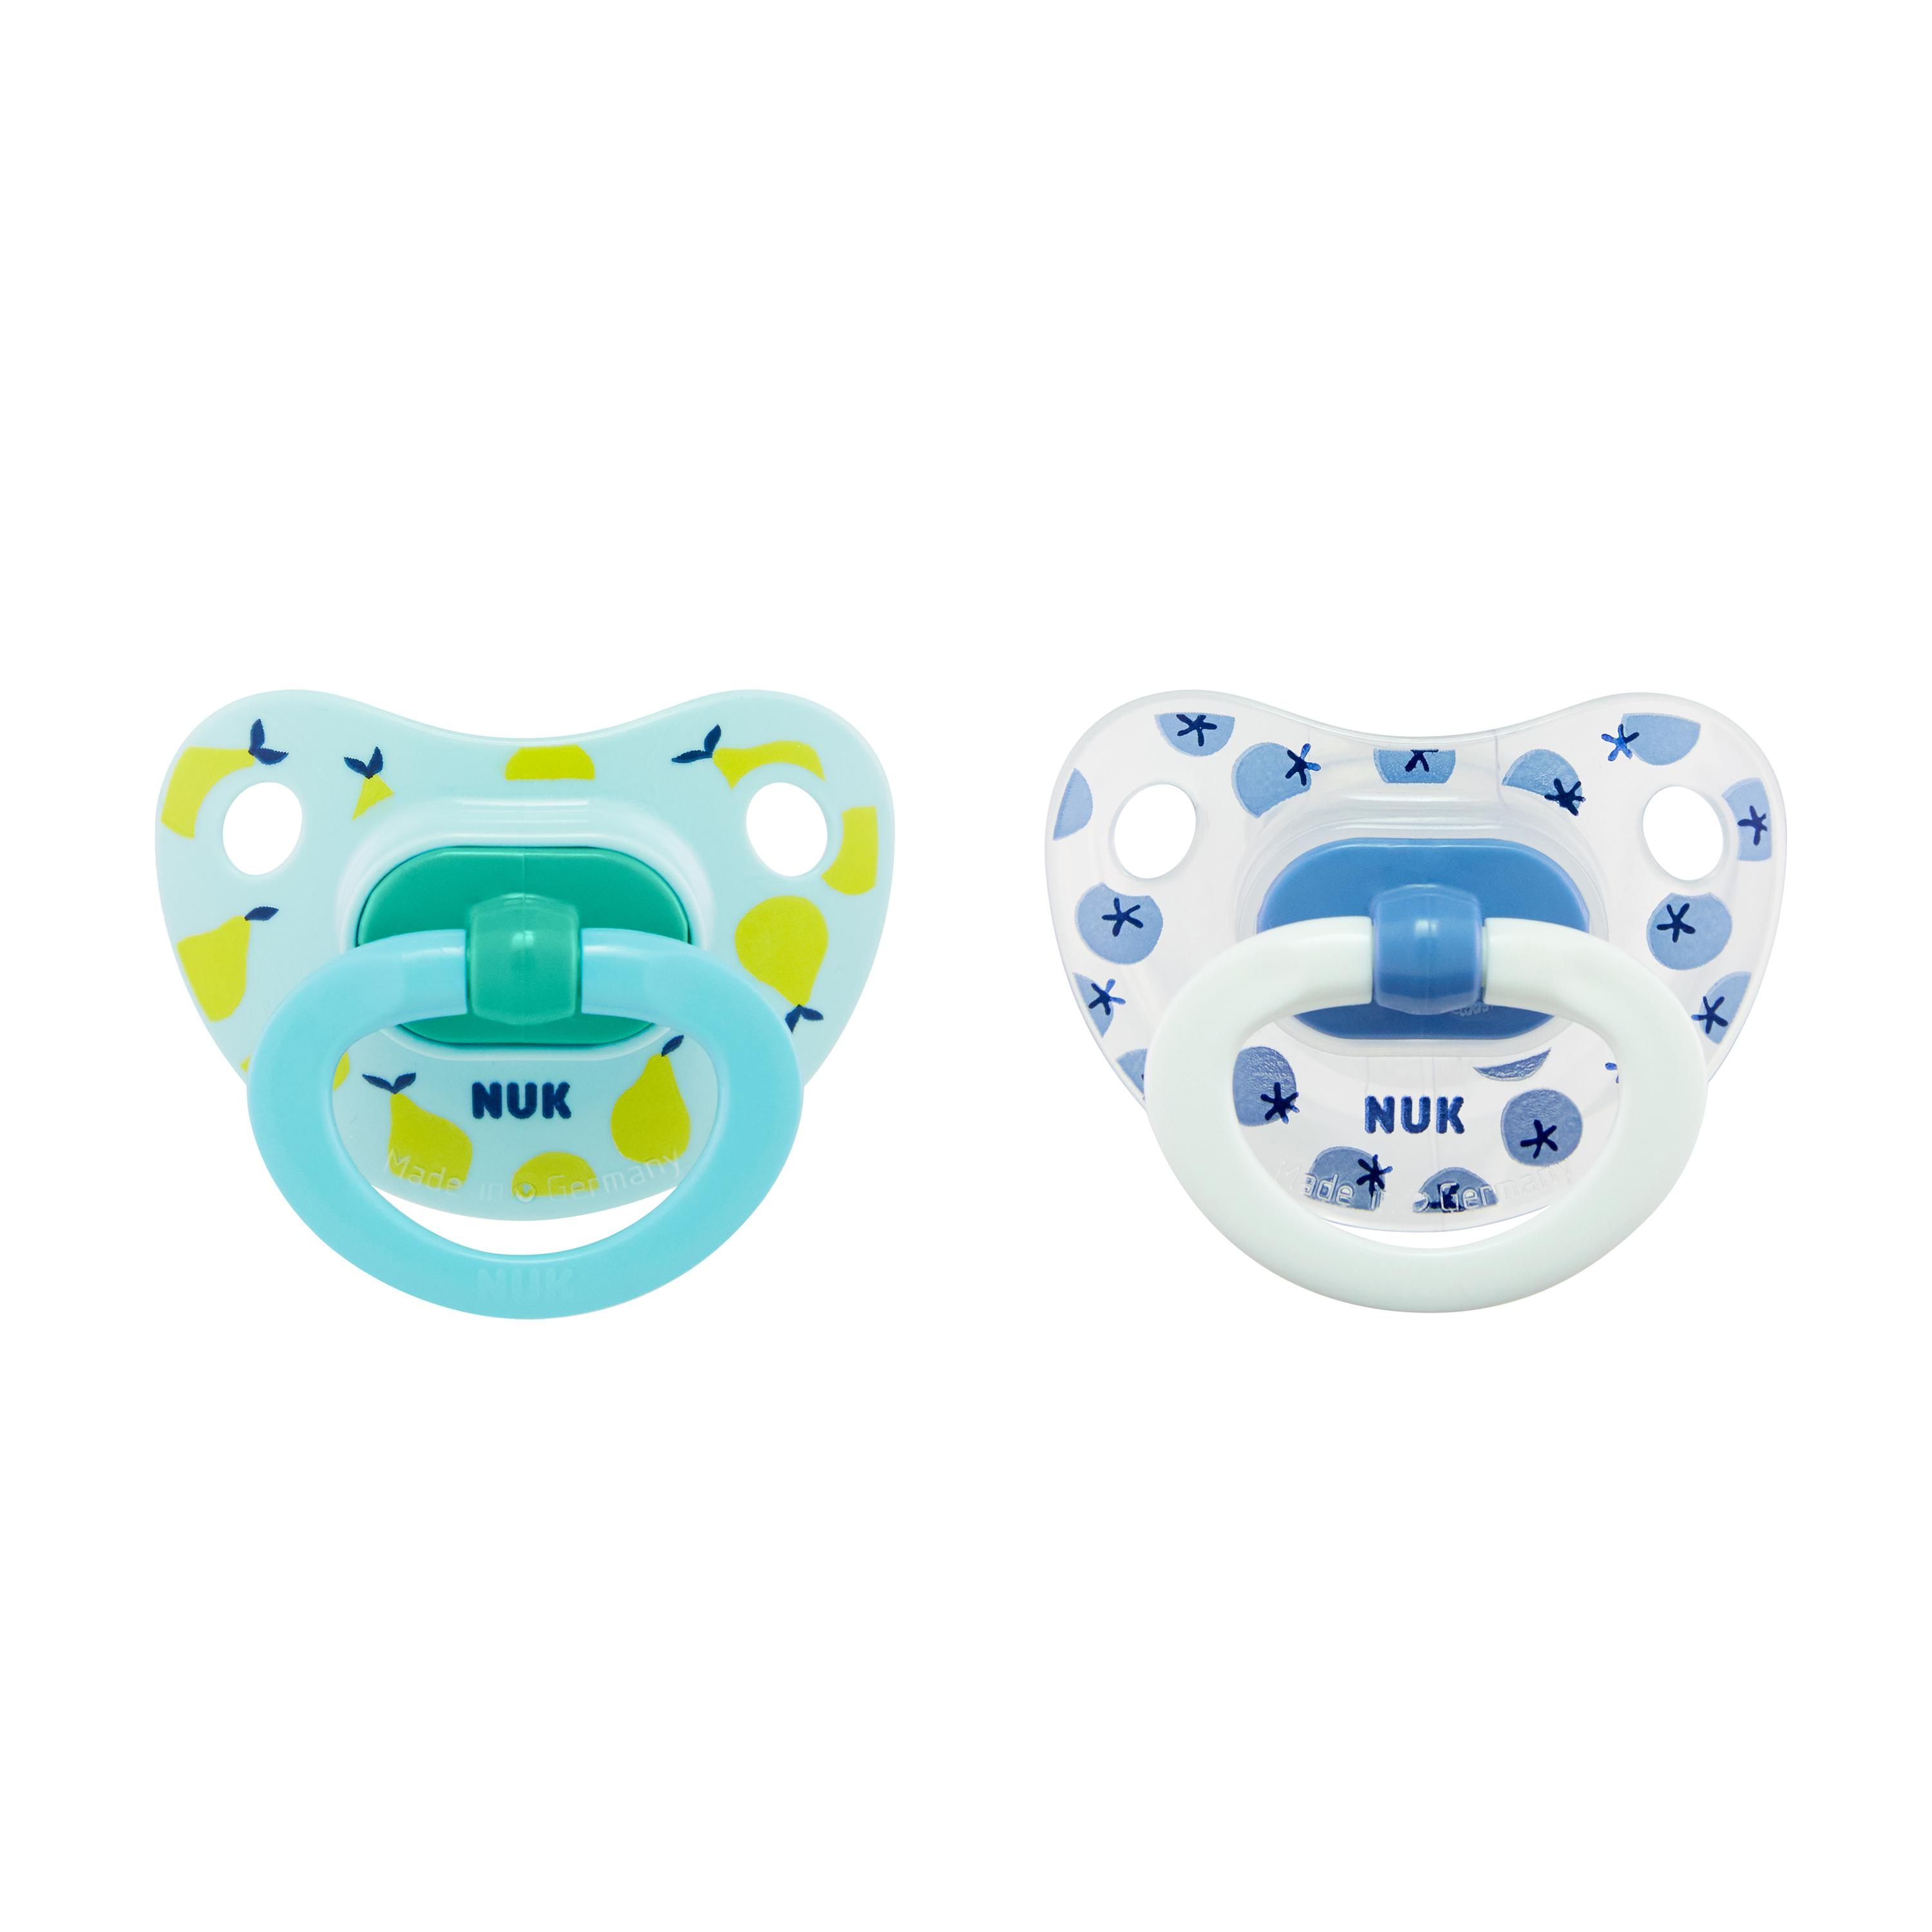 NUK® Sensitive™ Orthodontic Pacifiers, 6-18 Months, 2-Pack Product Image 5 of 7